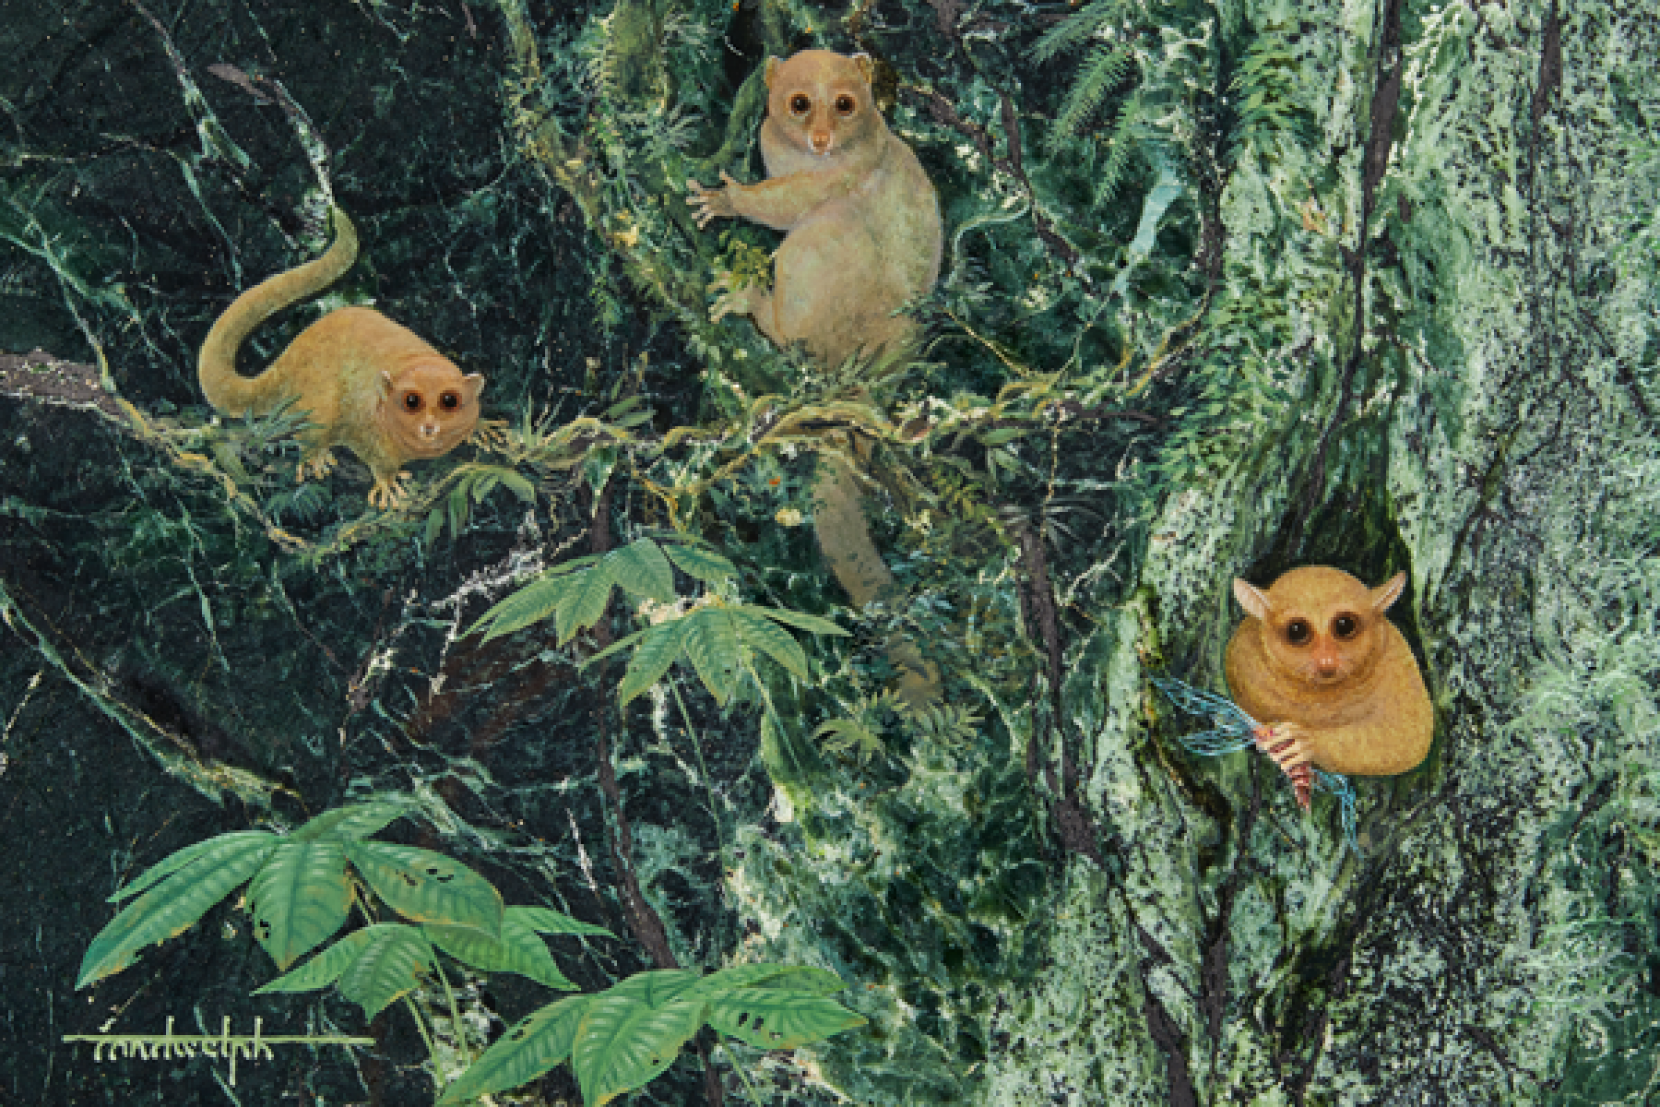 Three New Ancient Primates Identified From 46 Million Years Ago - In San Diego